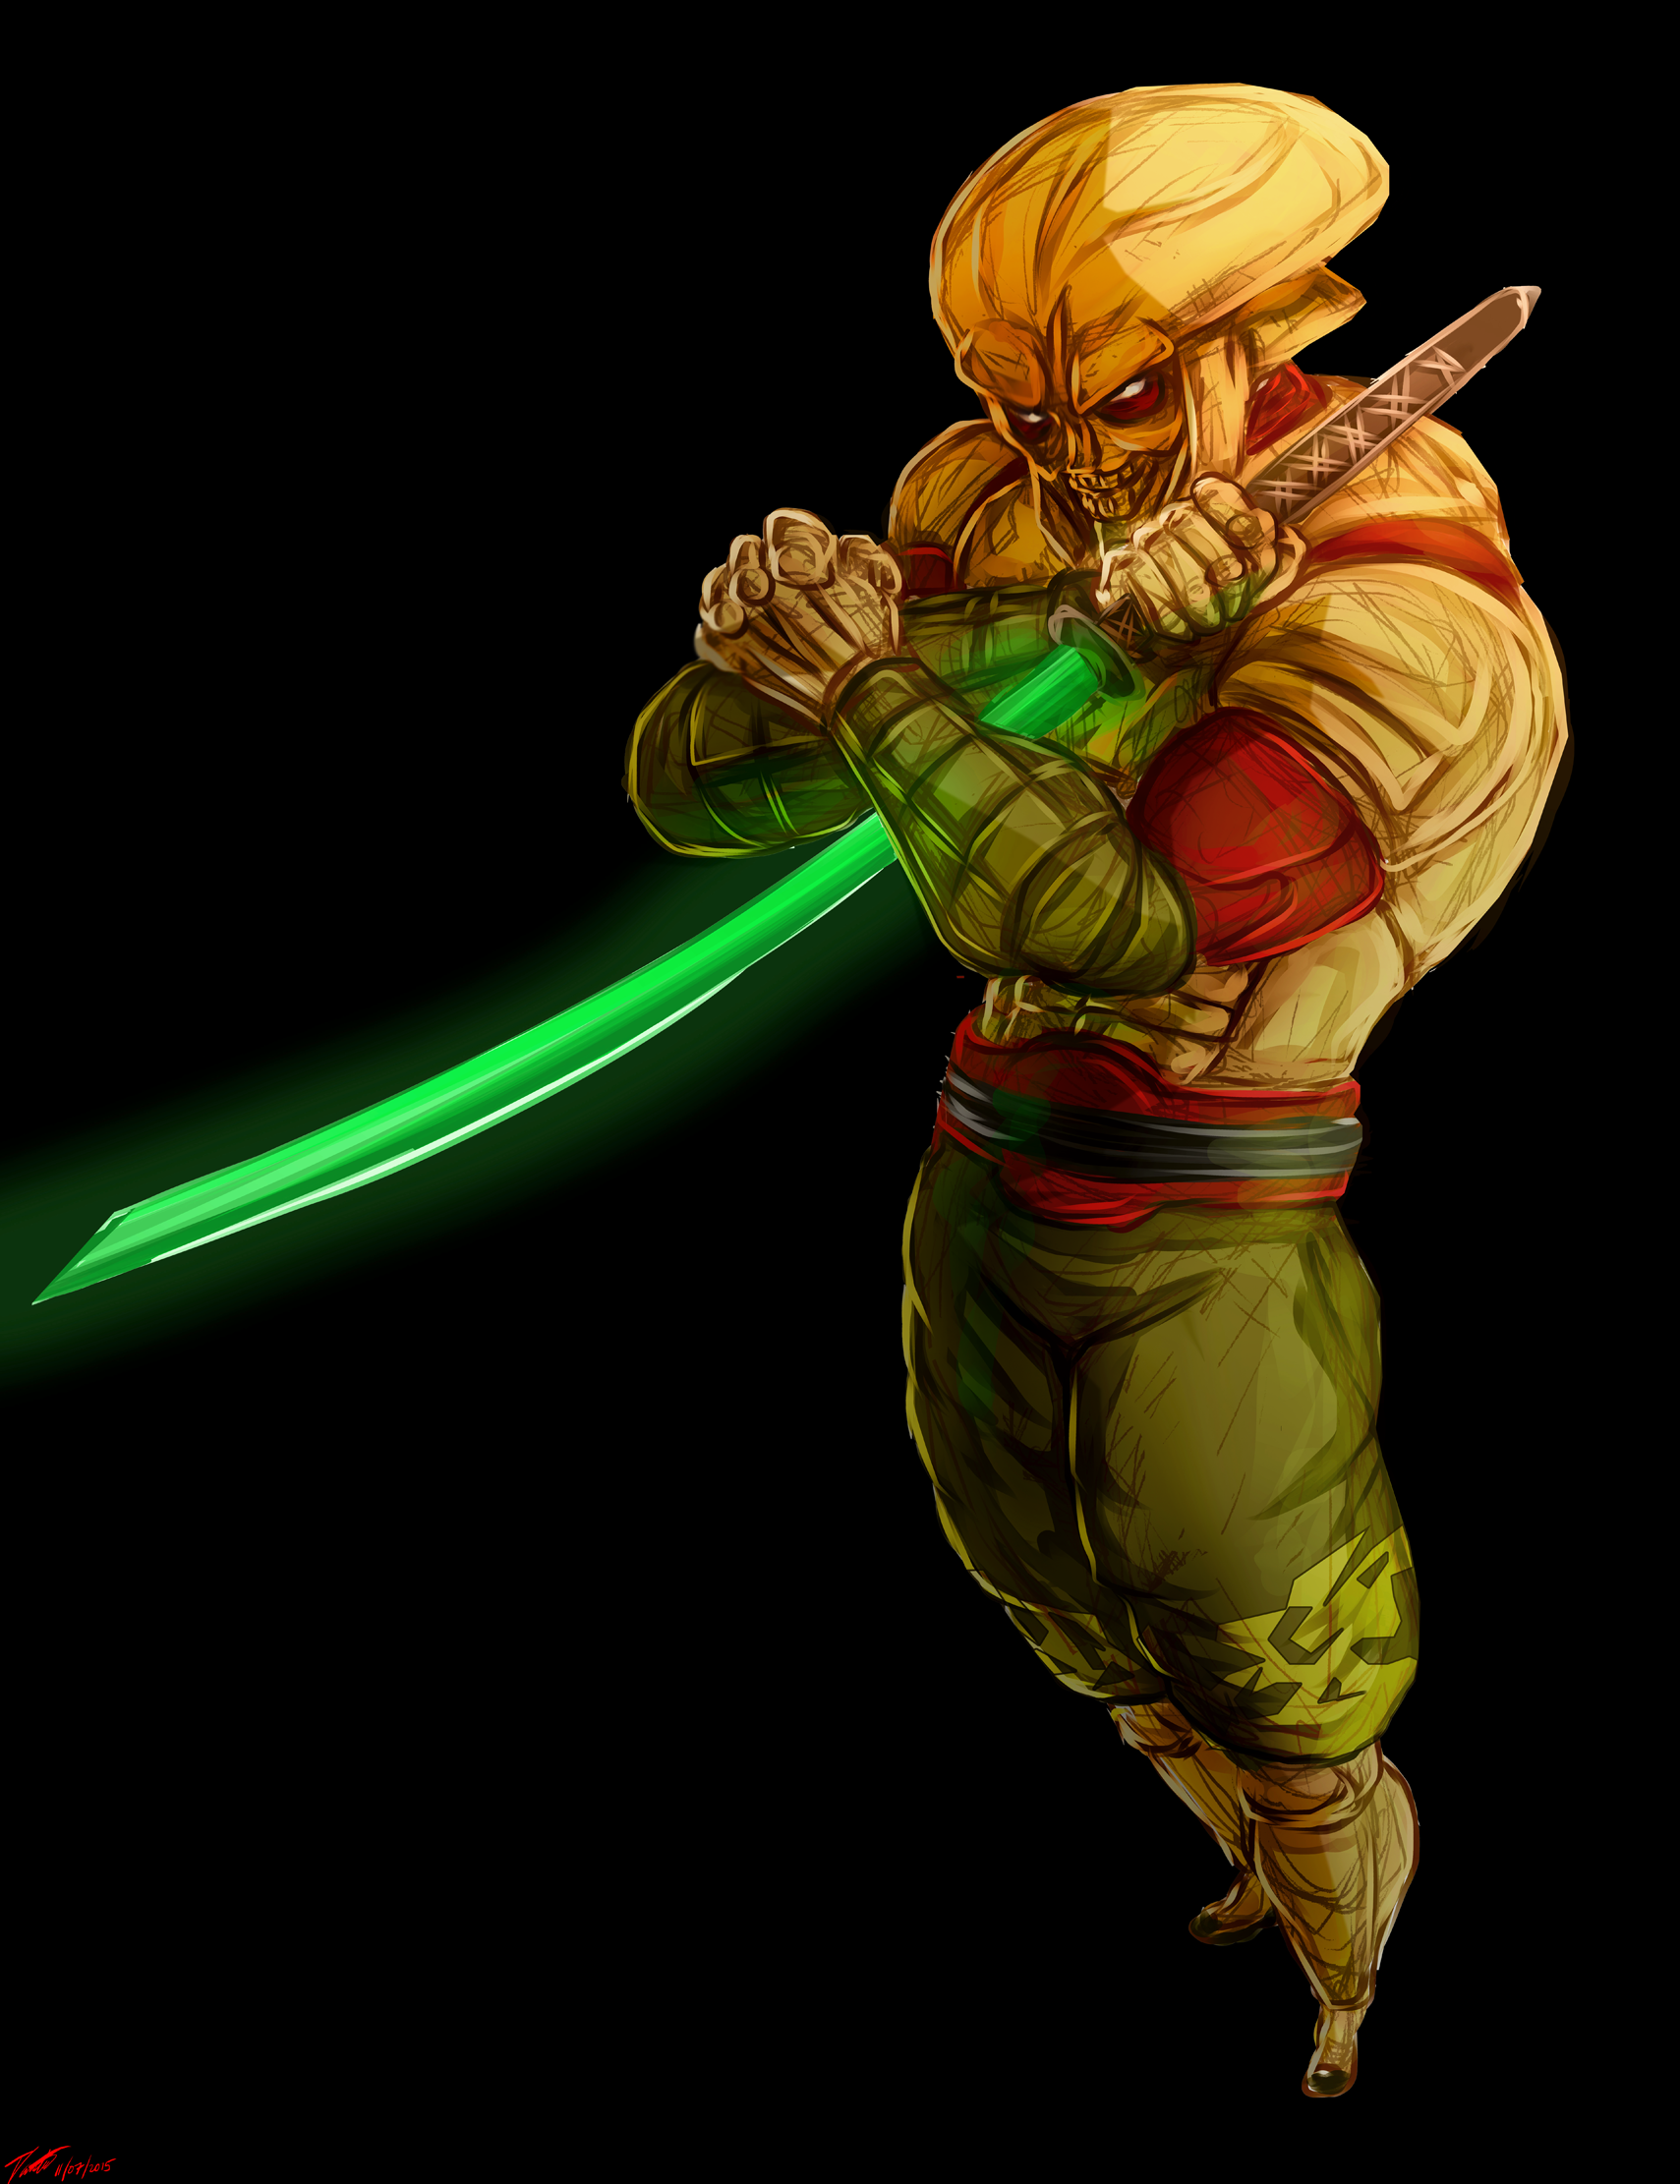 A Digital Sketch Painting I Made Of Yoshimitsu In His Tekken 3 Guise Gaming Posters Poster Prints Art Of Fighting